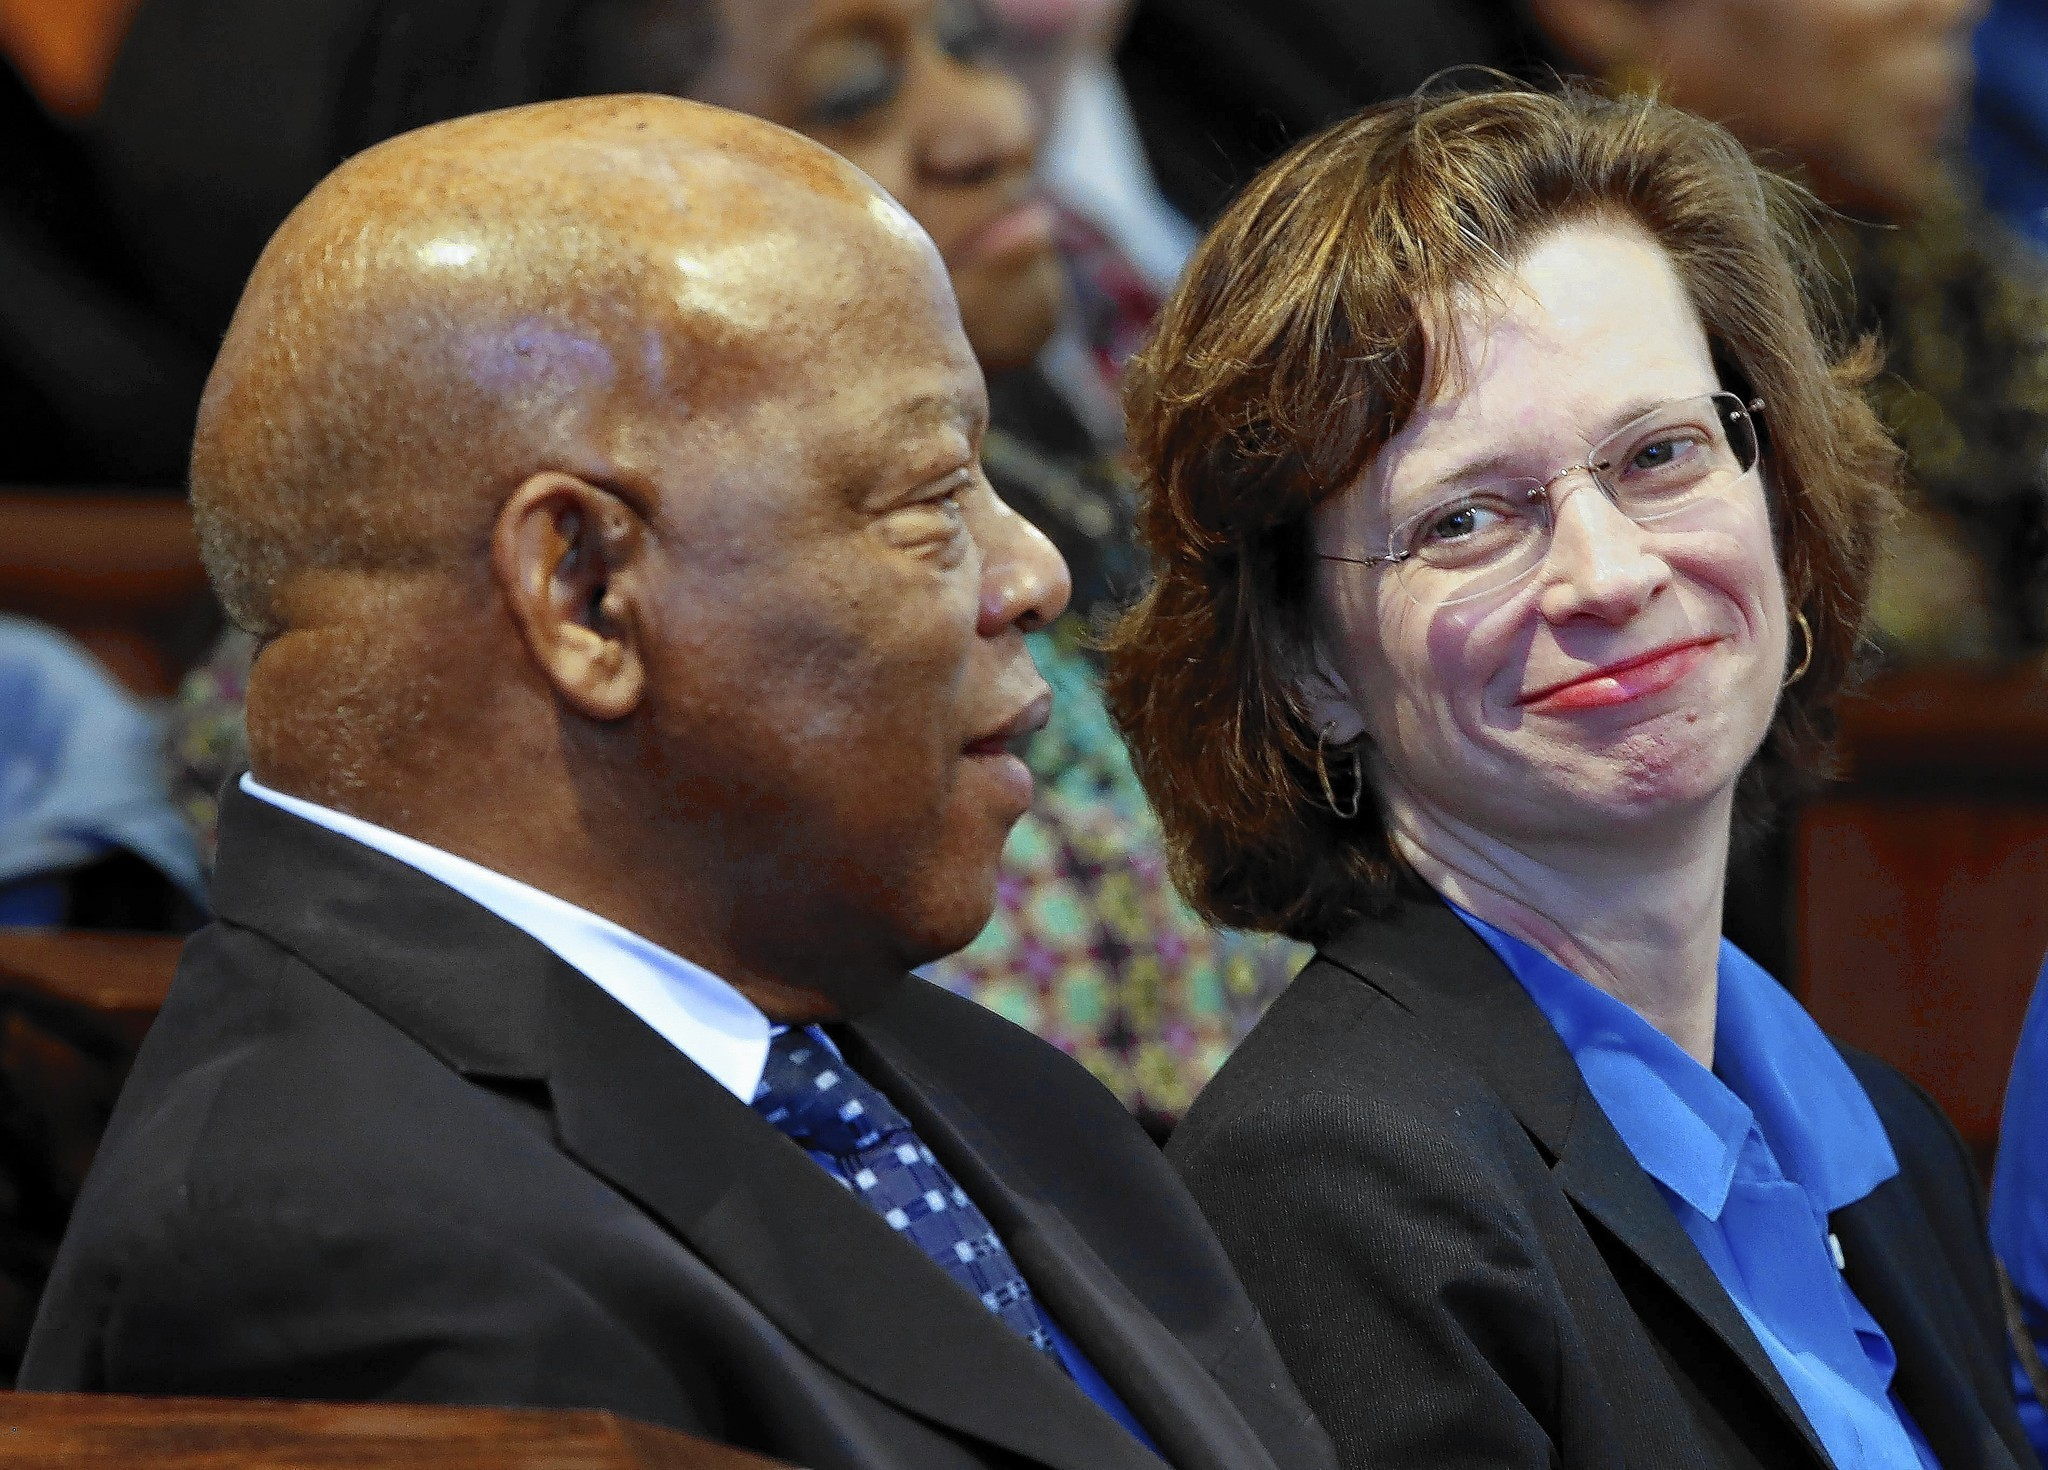 Moderate Democrat Michelle Nunn, shown with Rep. John Lewis (D-Ga.), is running aganst several Republicans for a Senate seat from Georgia.